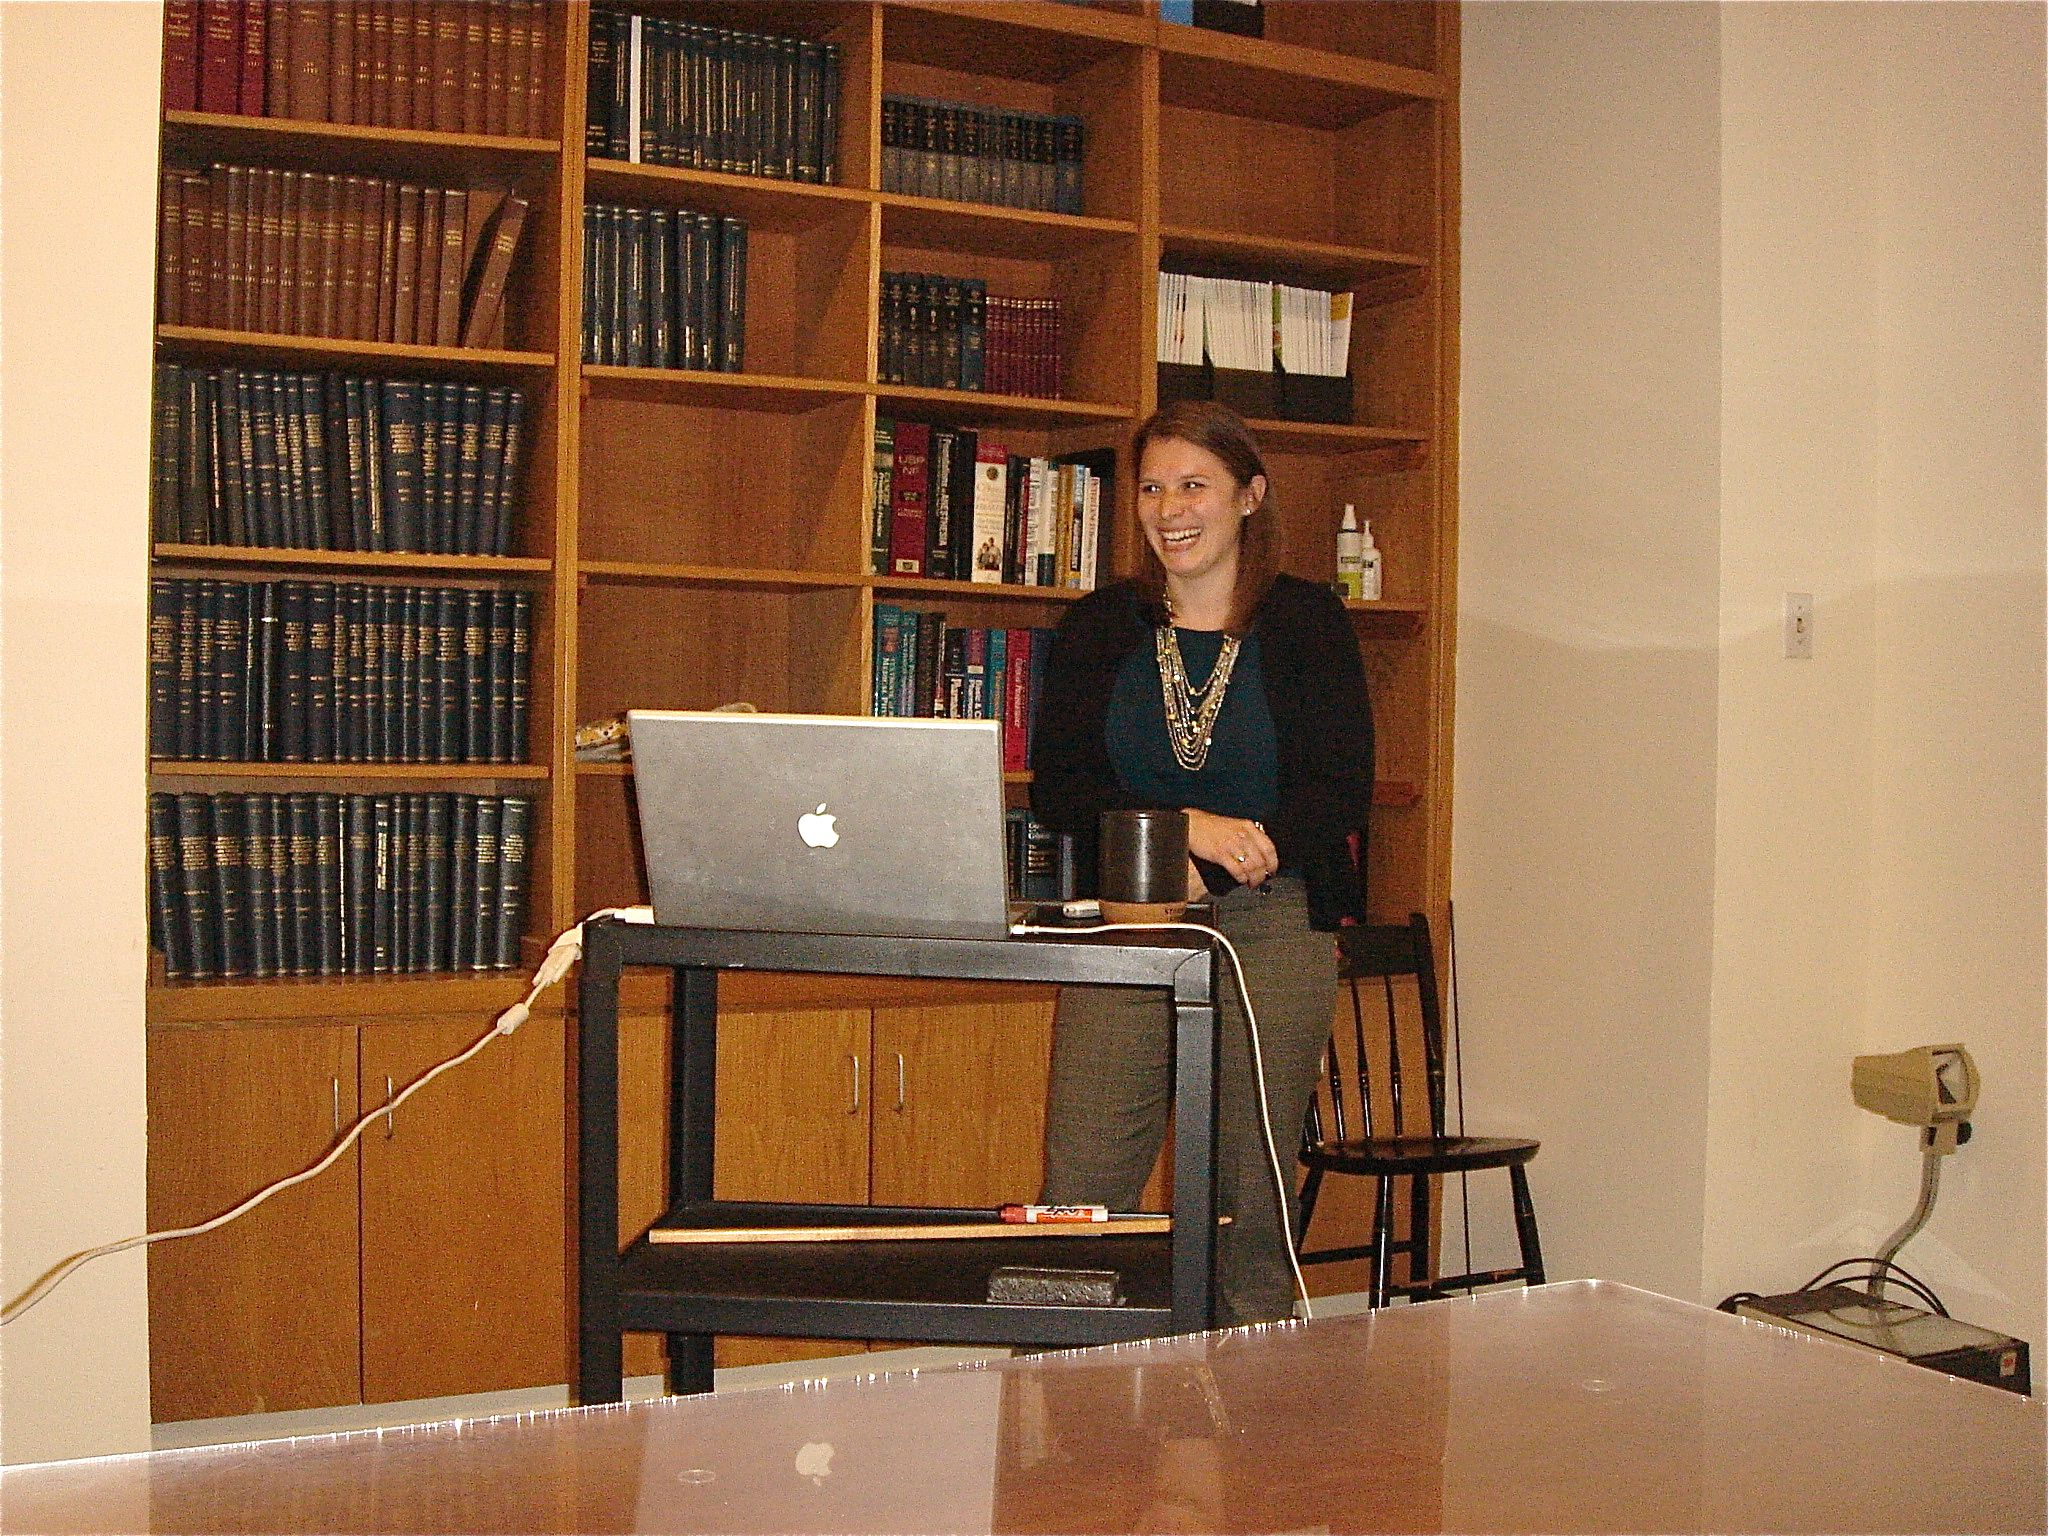 Pam speaking at podium during her defense.